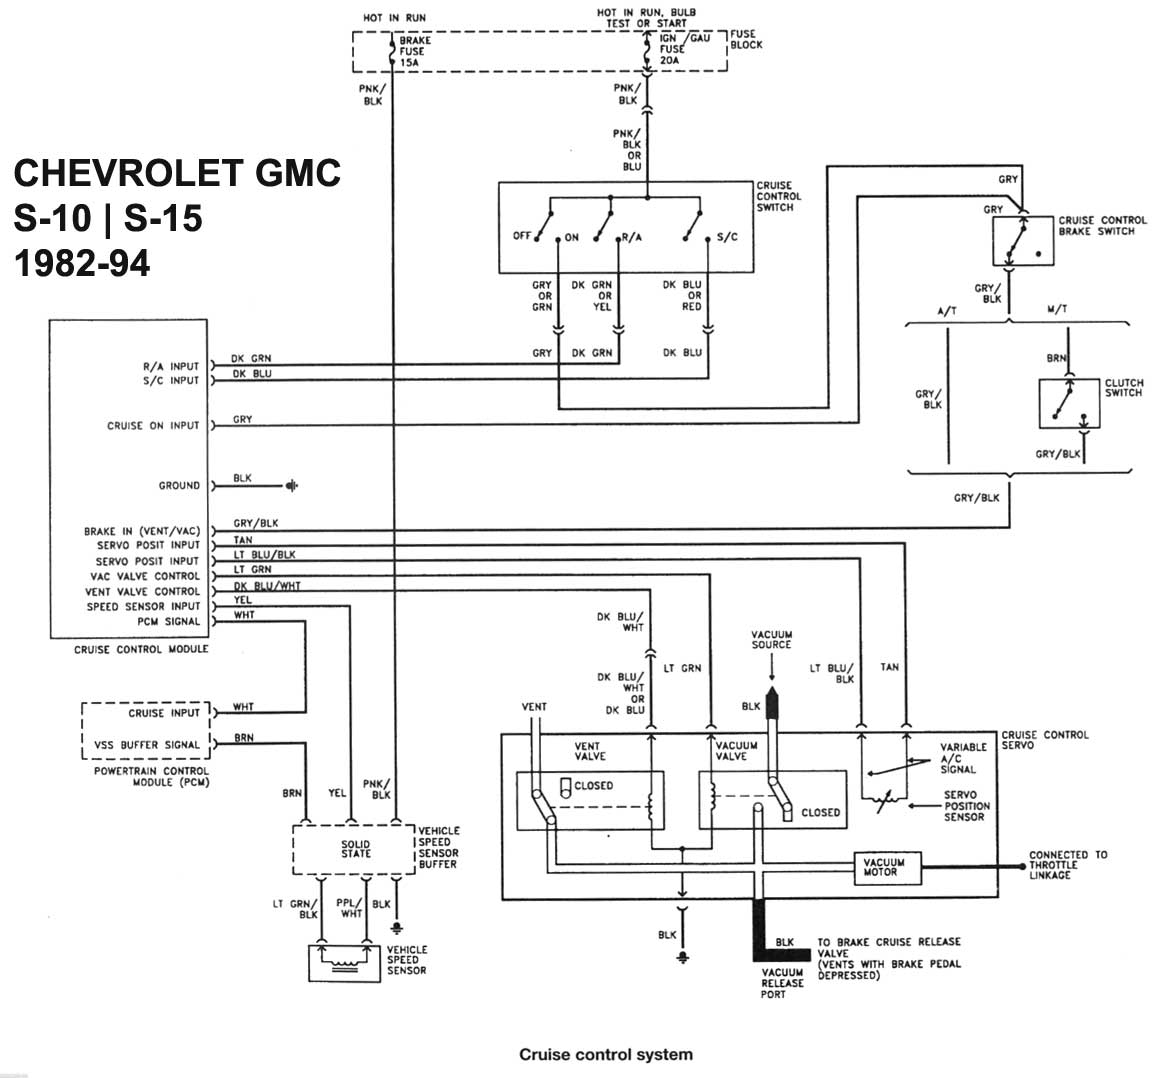 Wiring Diagram For 1987 Gmc S15 Pick Up